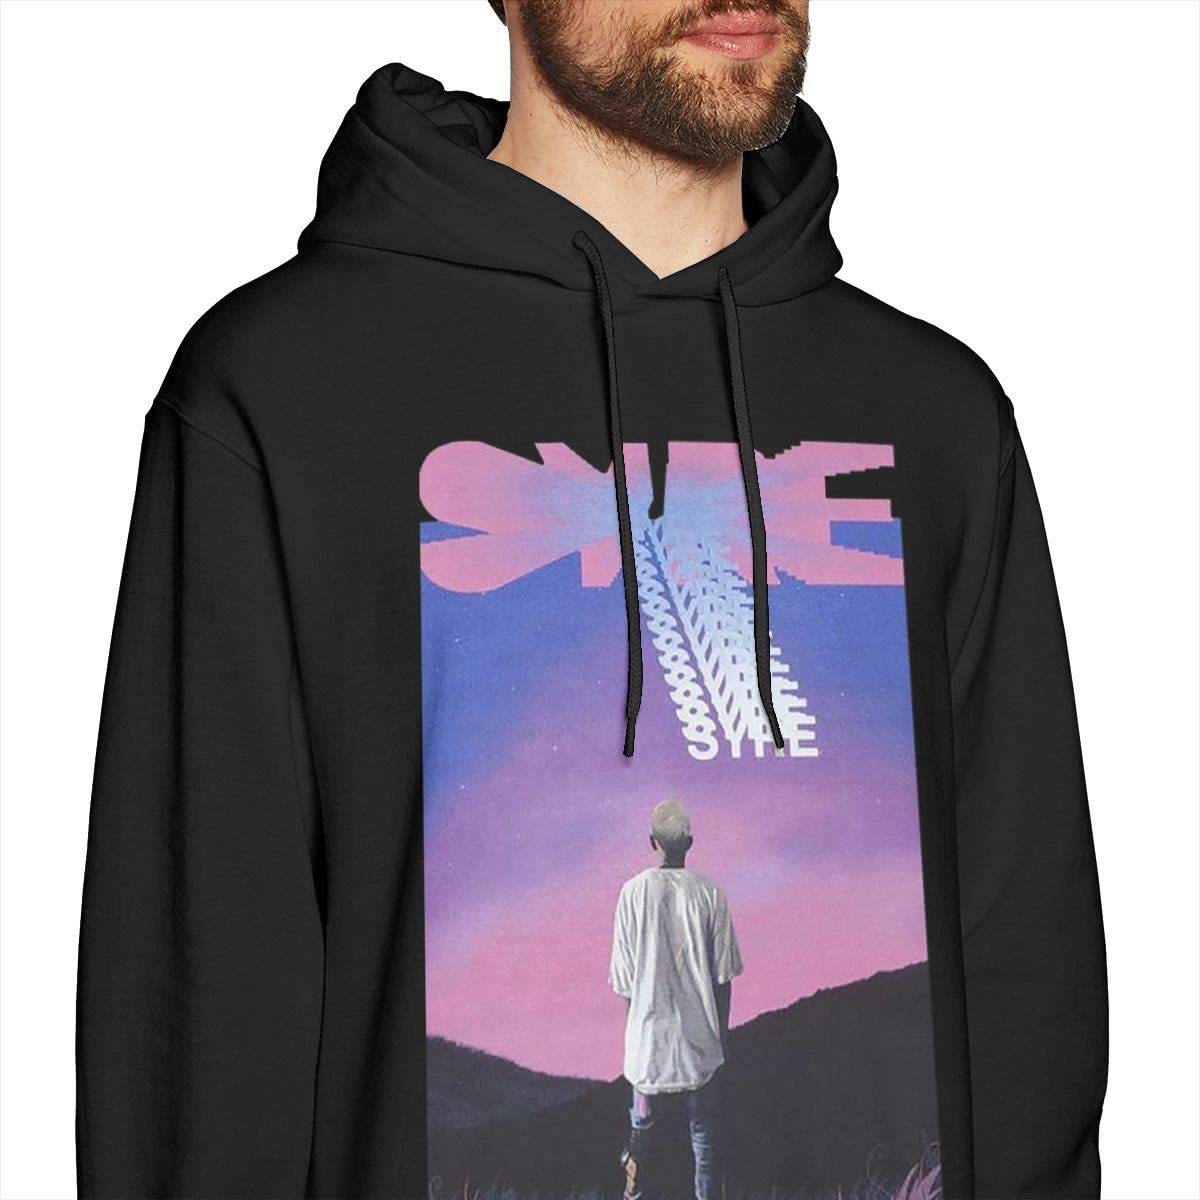 Mens Syre Jaden Smith Long Sleeve Hooded Sweat Shirt Pullover